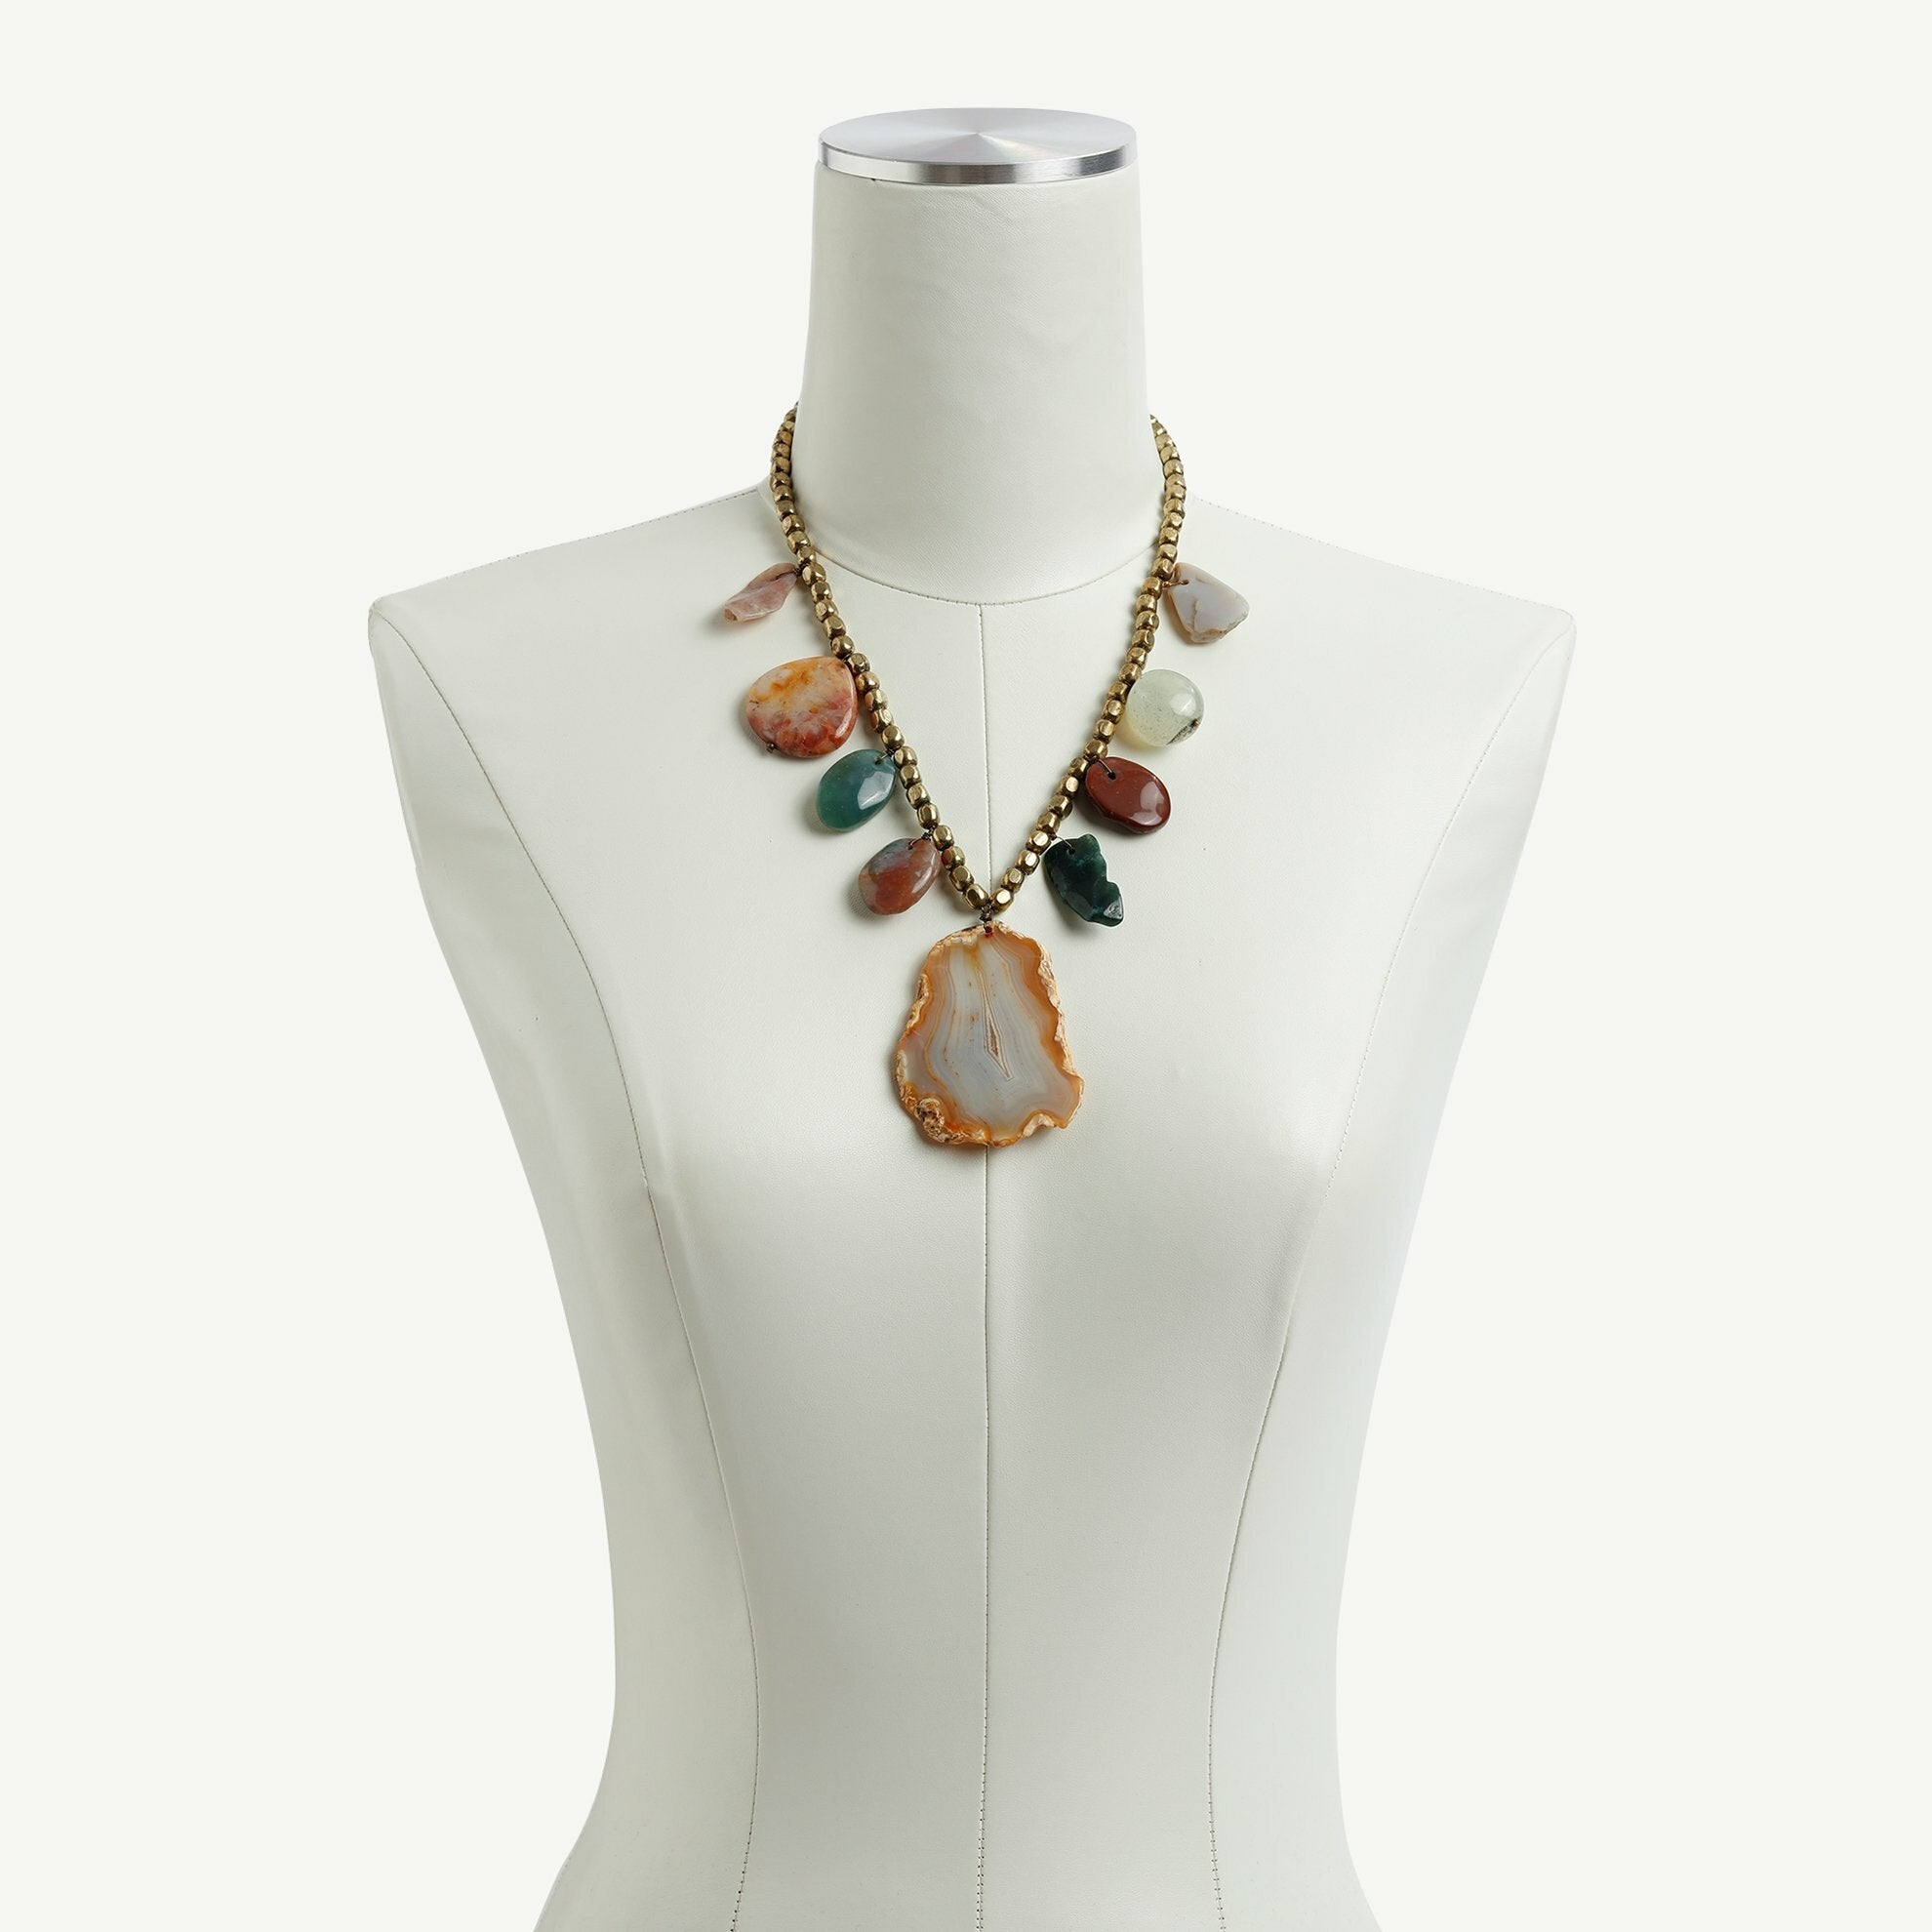 Natural stone necklace on dress form.